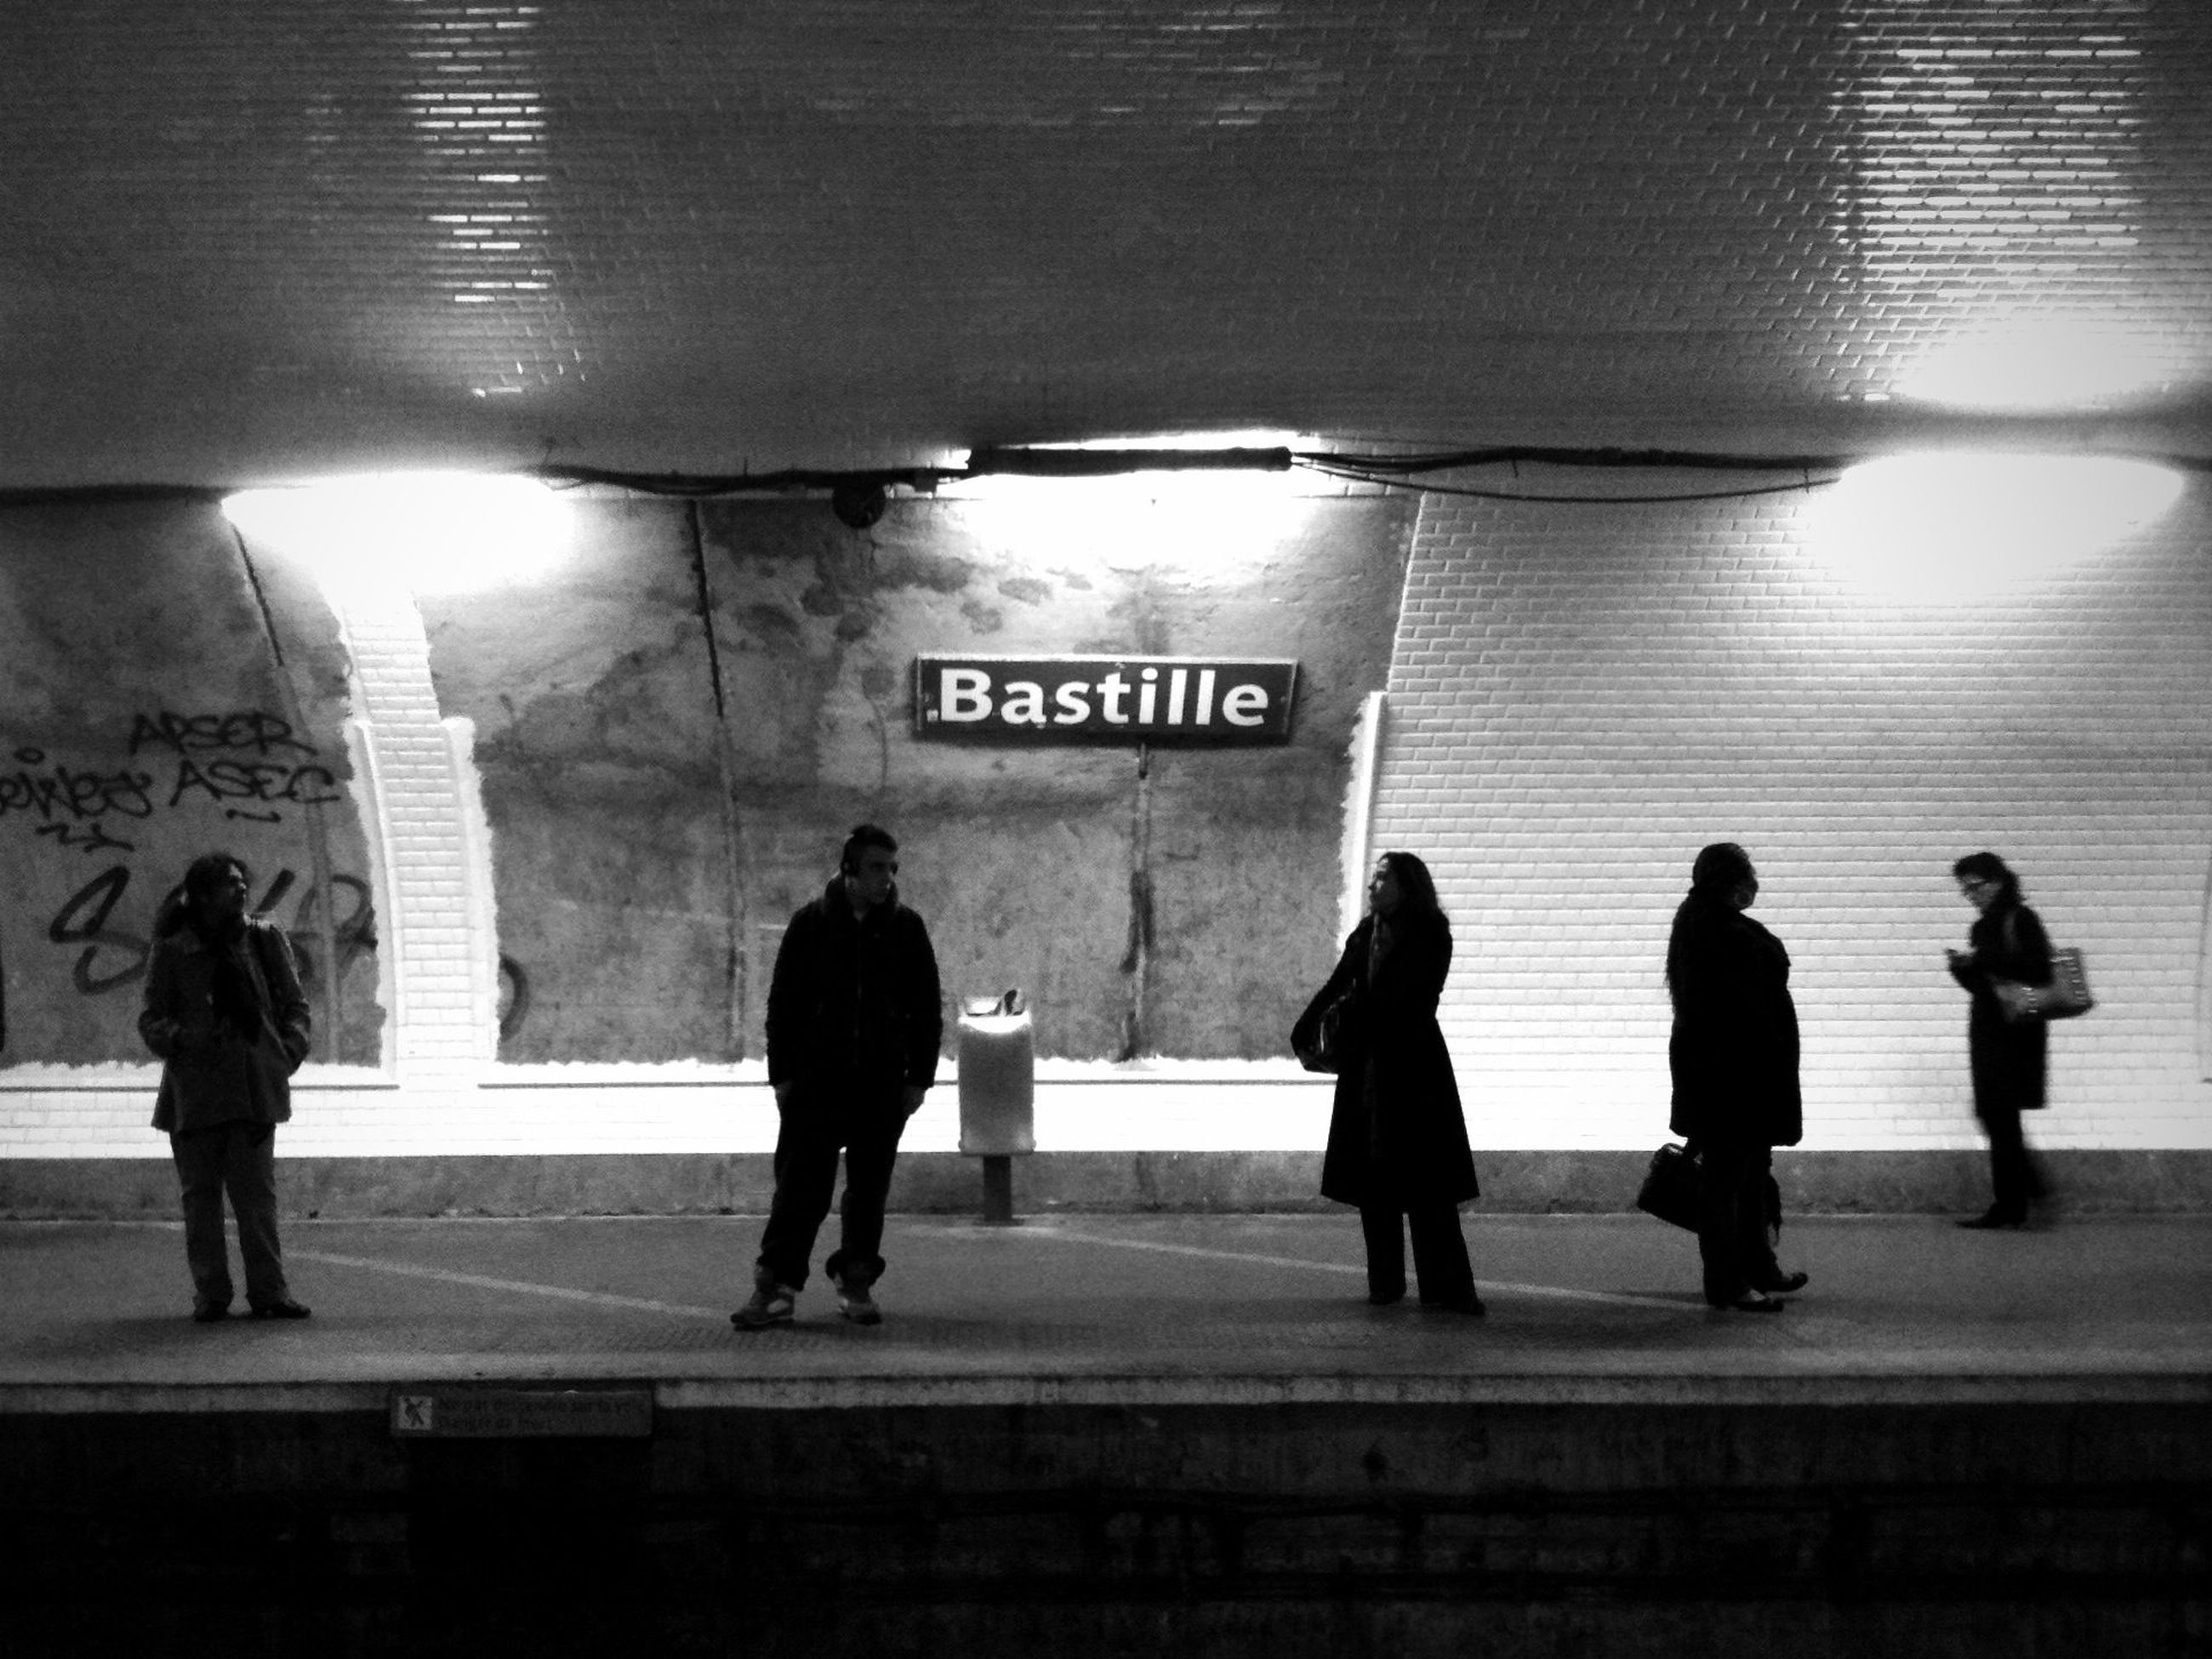 indoors, men, text, walking, person, lifestyles, western script, full length, railroad station, illuminated, subway station, built structure, architecture, subway, communication, large group of people, city life, railroad station platform, silhouette